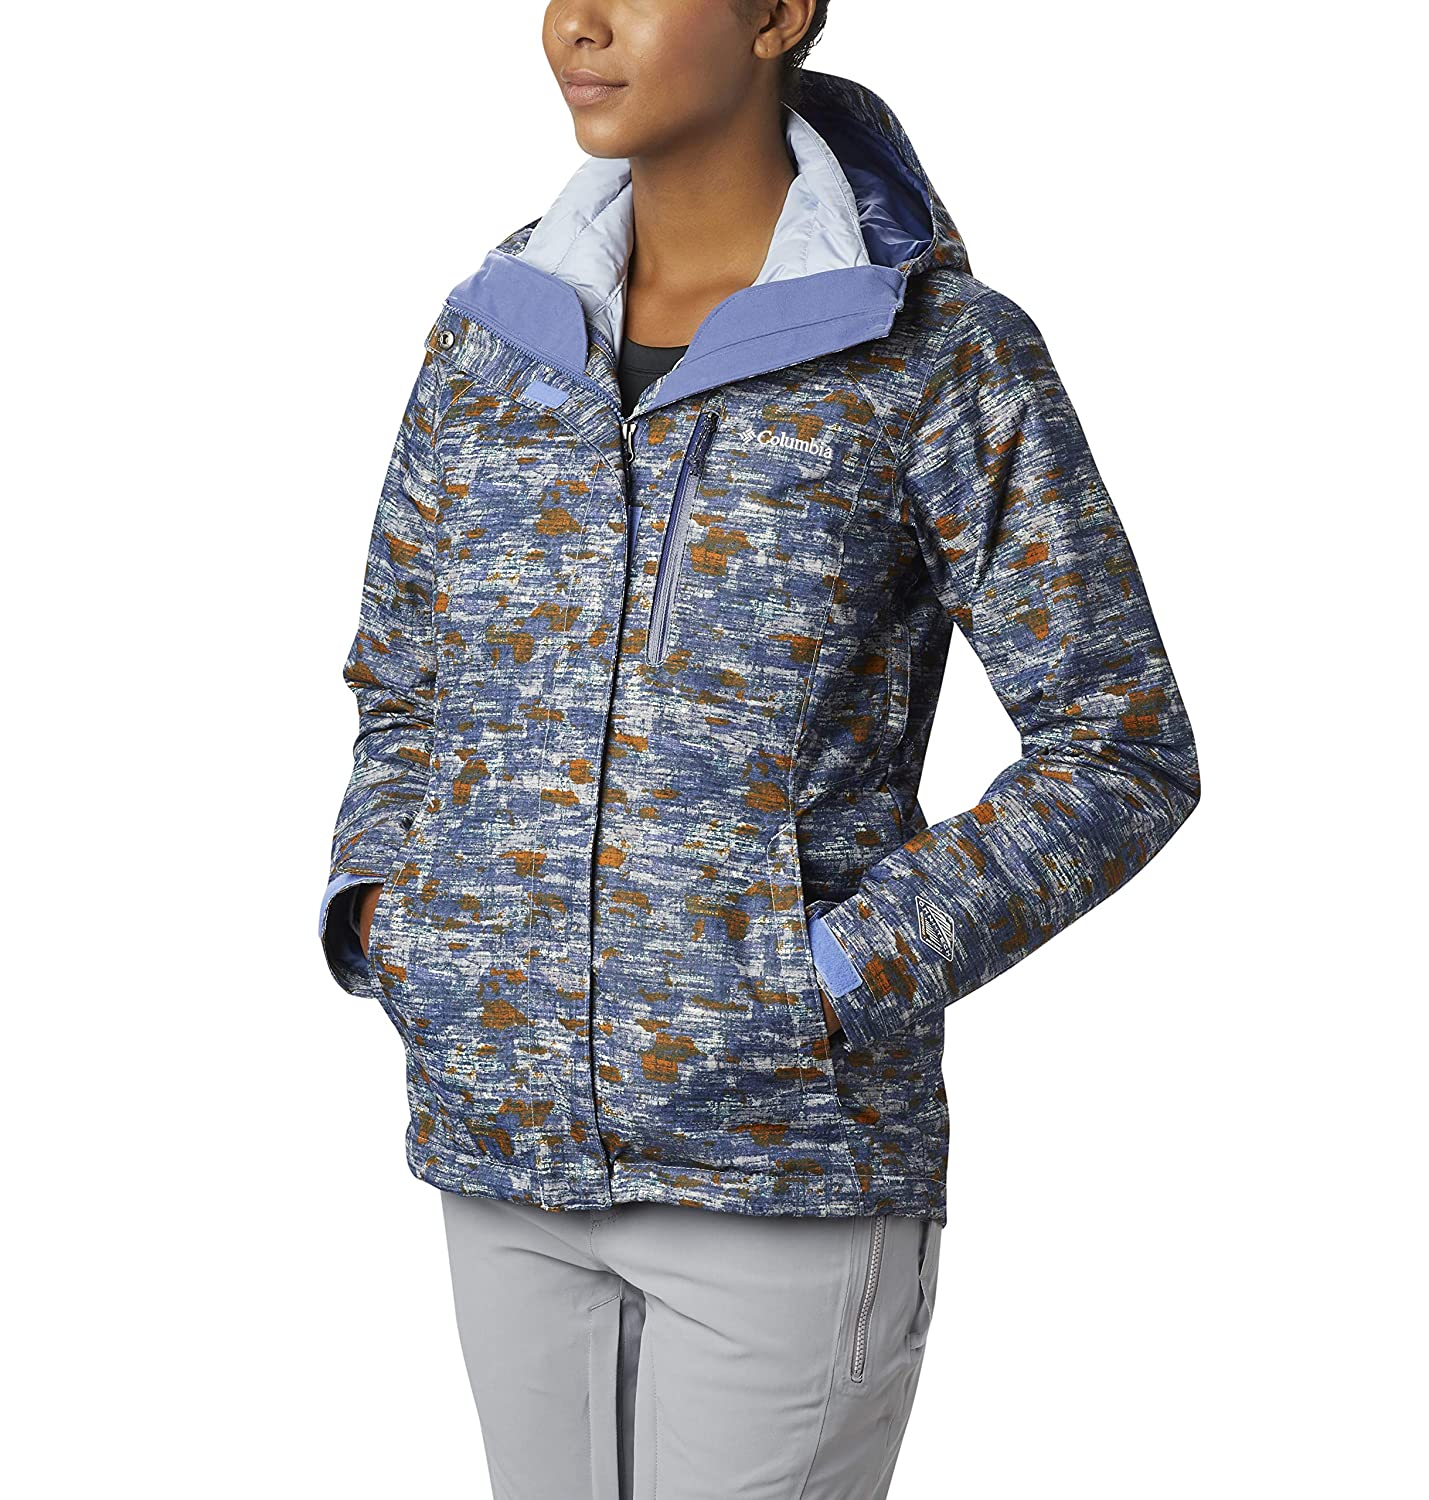 Faded Sky Camo Print Columbia Women's Whirlibird Interchange Jacket, Waterproof and Breathable